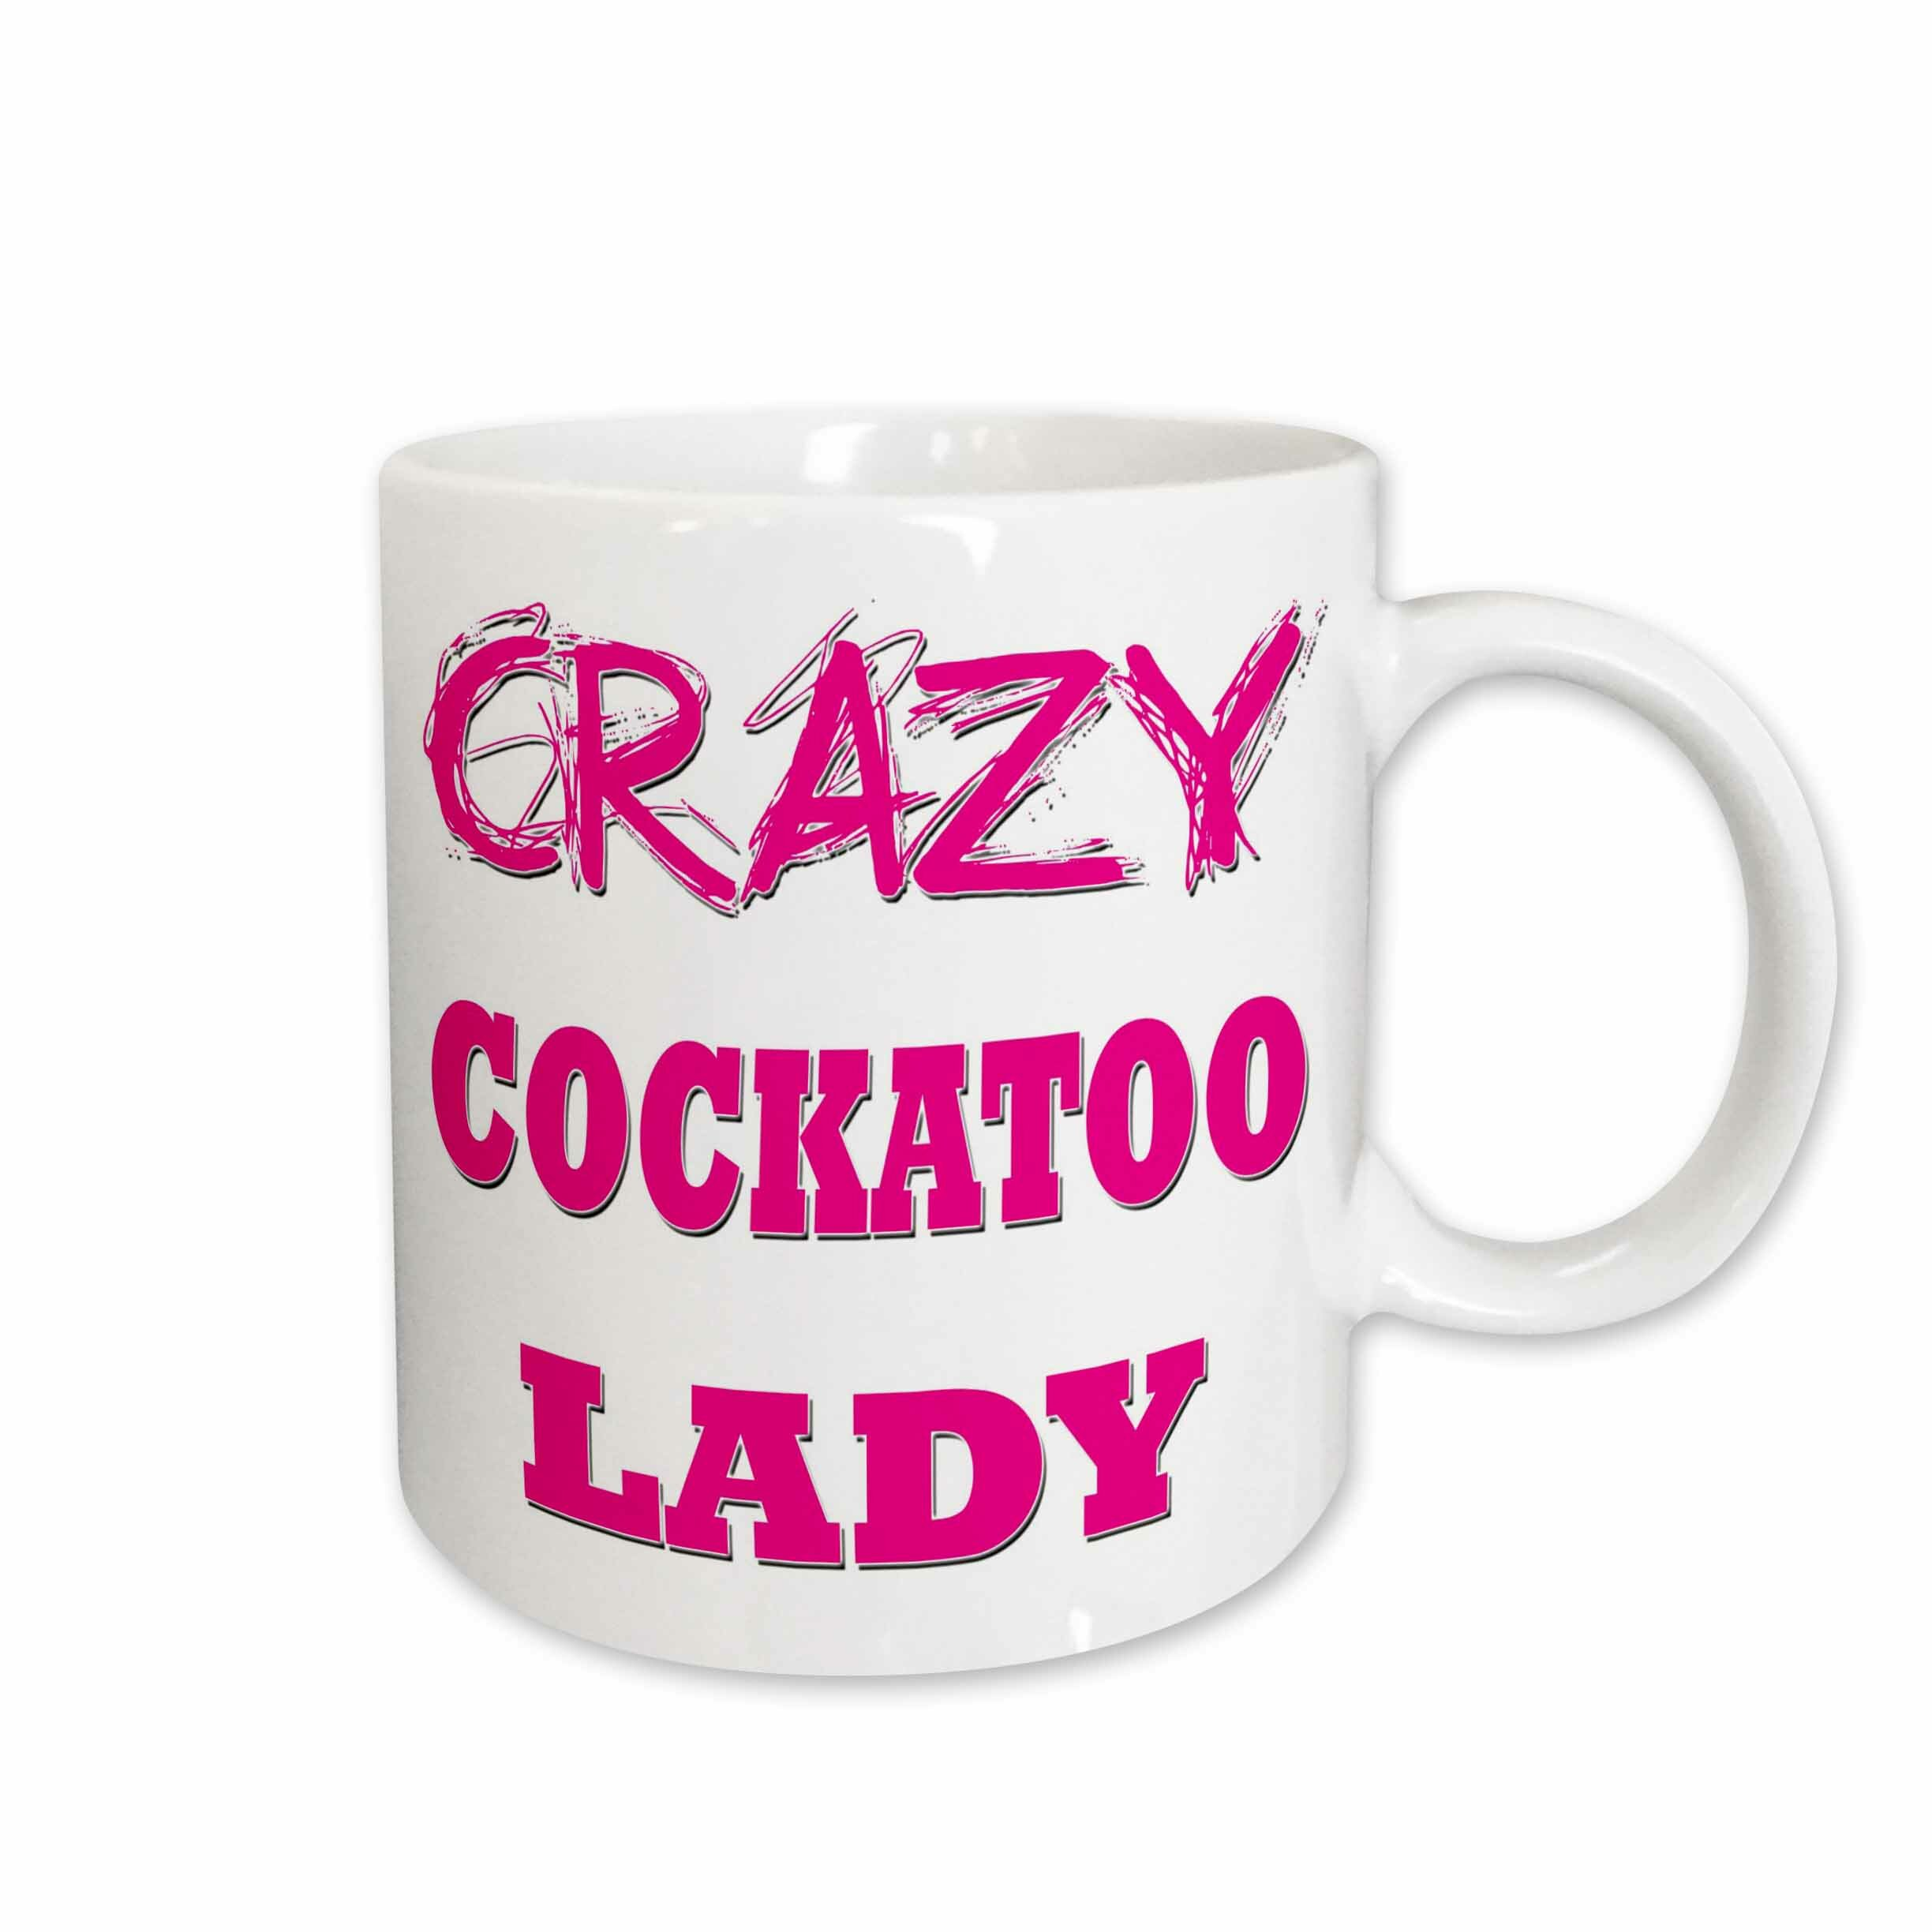 East Urban Home Crazy Cockatoo Lady Coffee Mug Wayfair